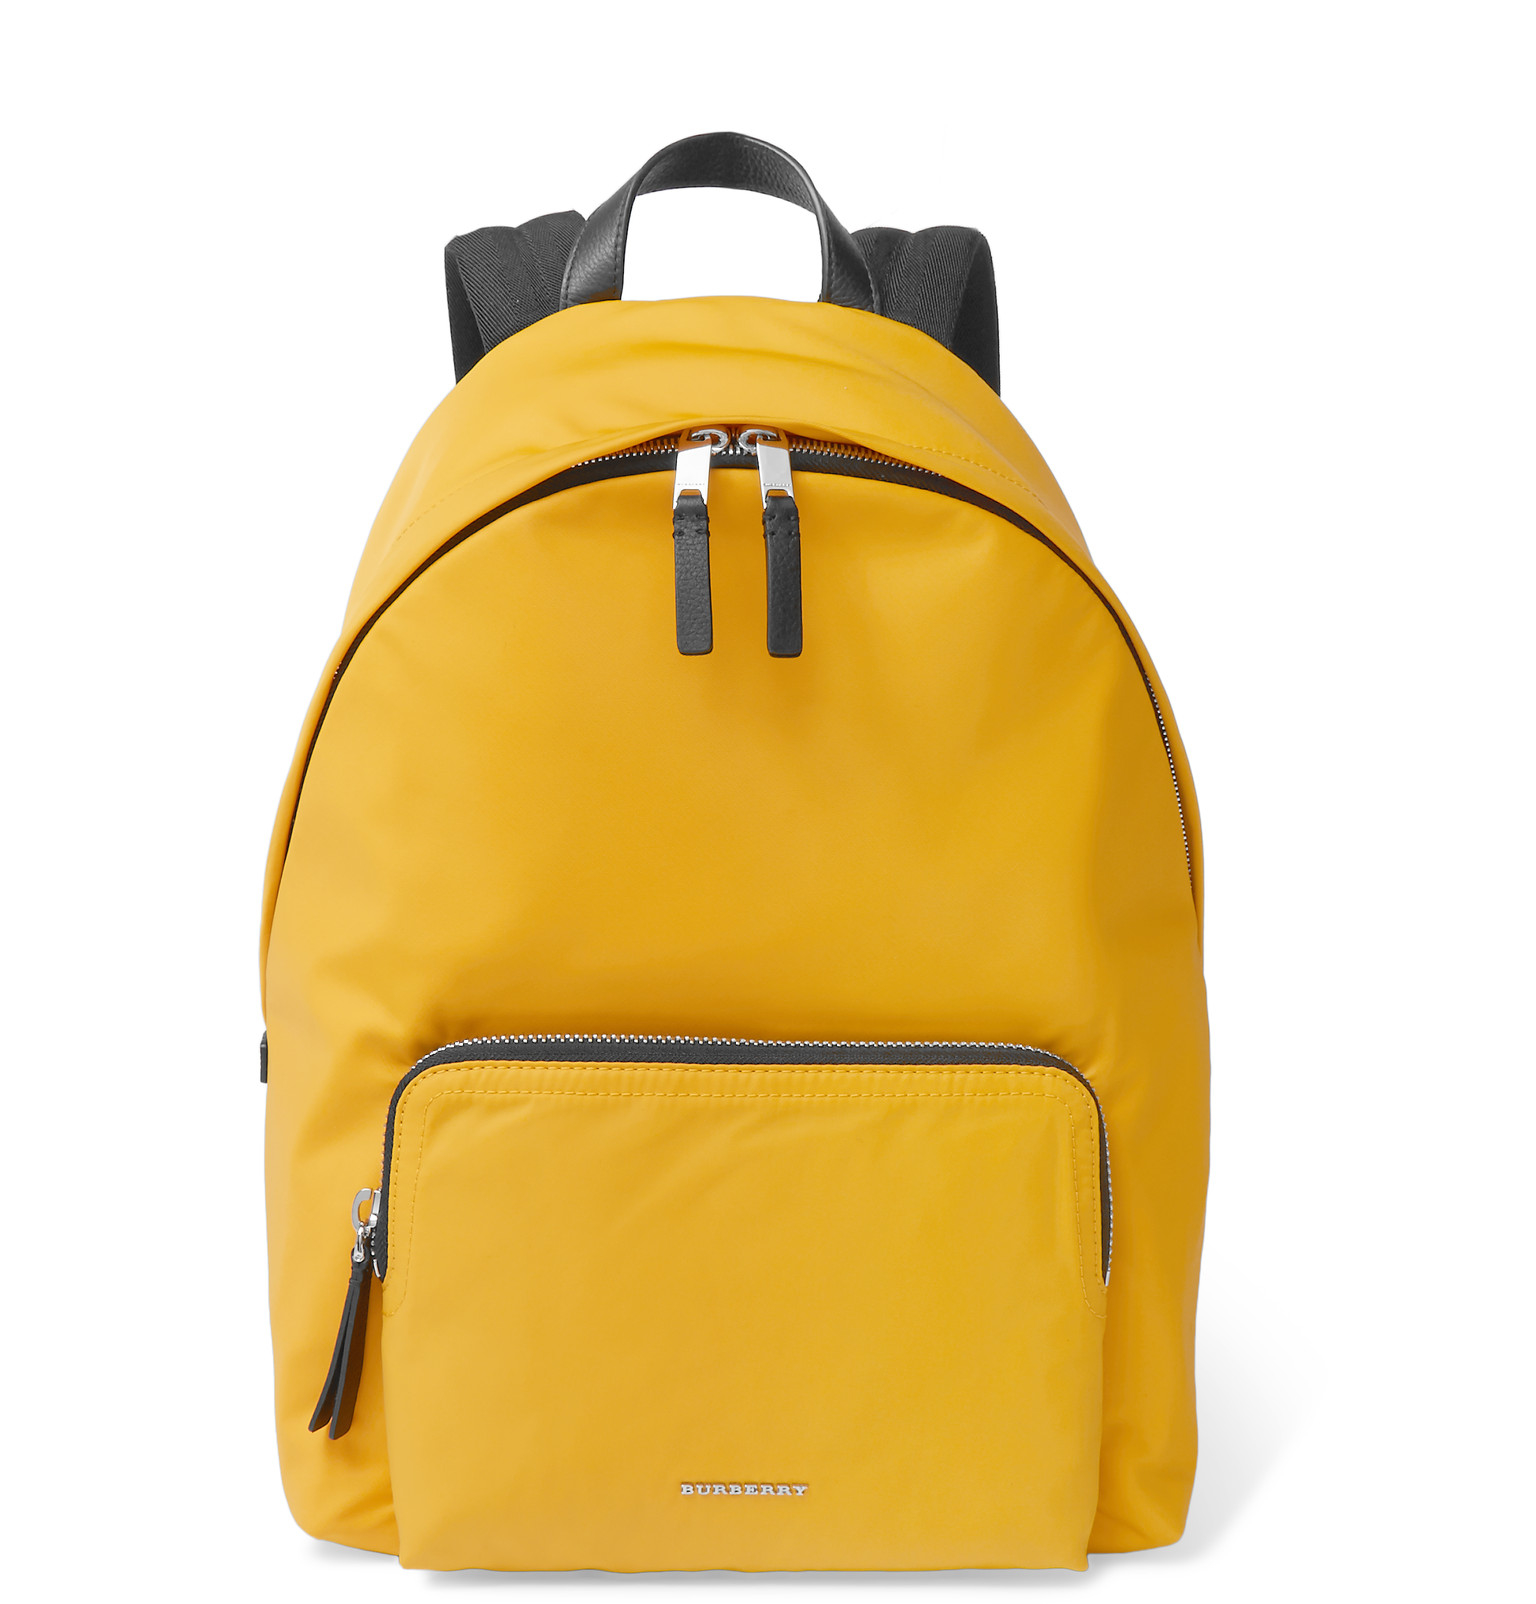 391199a69def Burberry London Canvas Backpack in Yellow for Men - Lyst